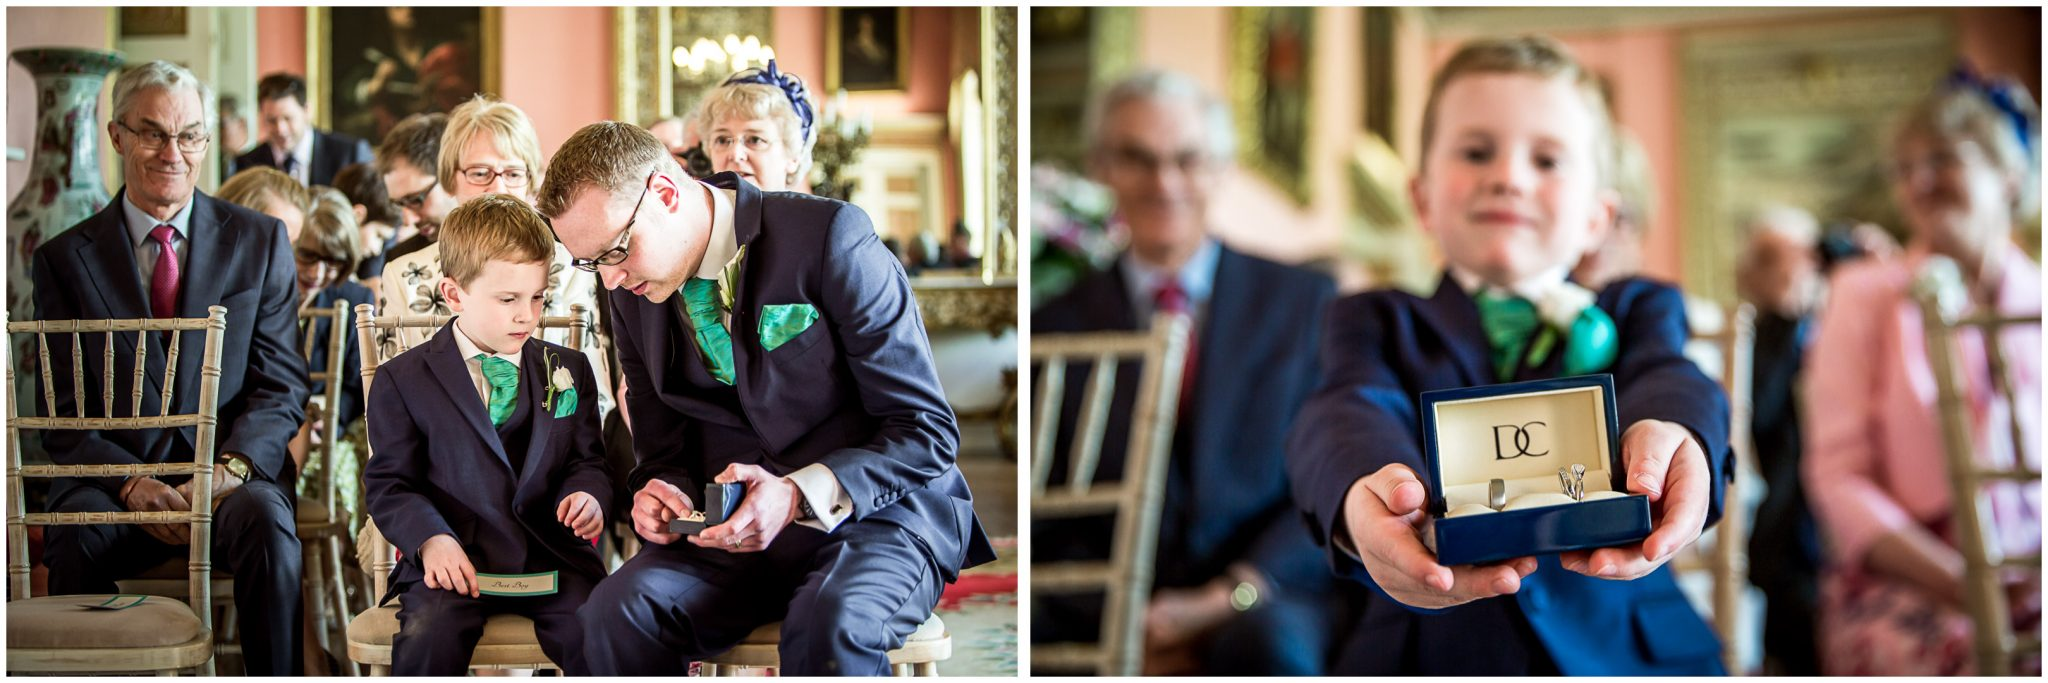 Avington Park wedding photography page boy before ceremony